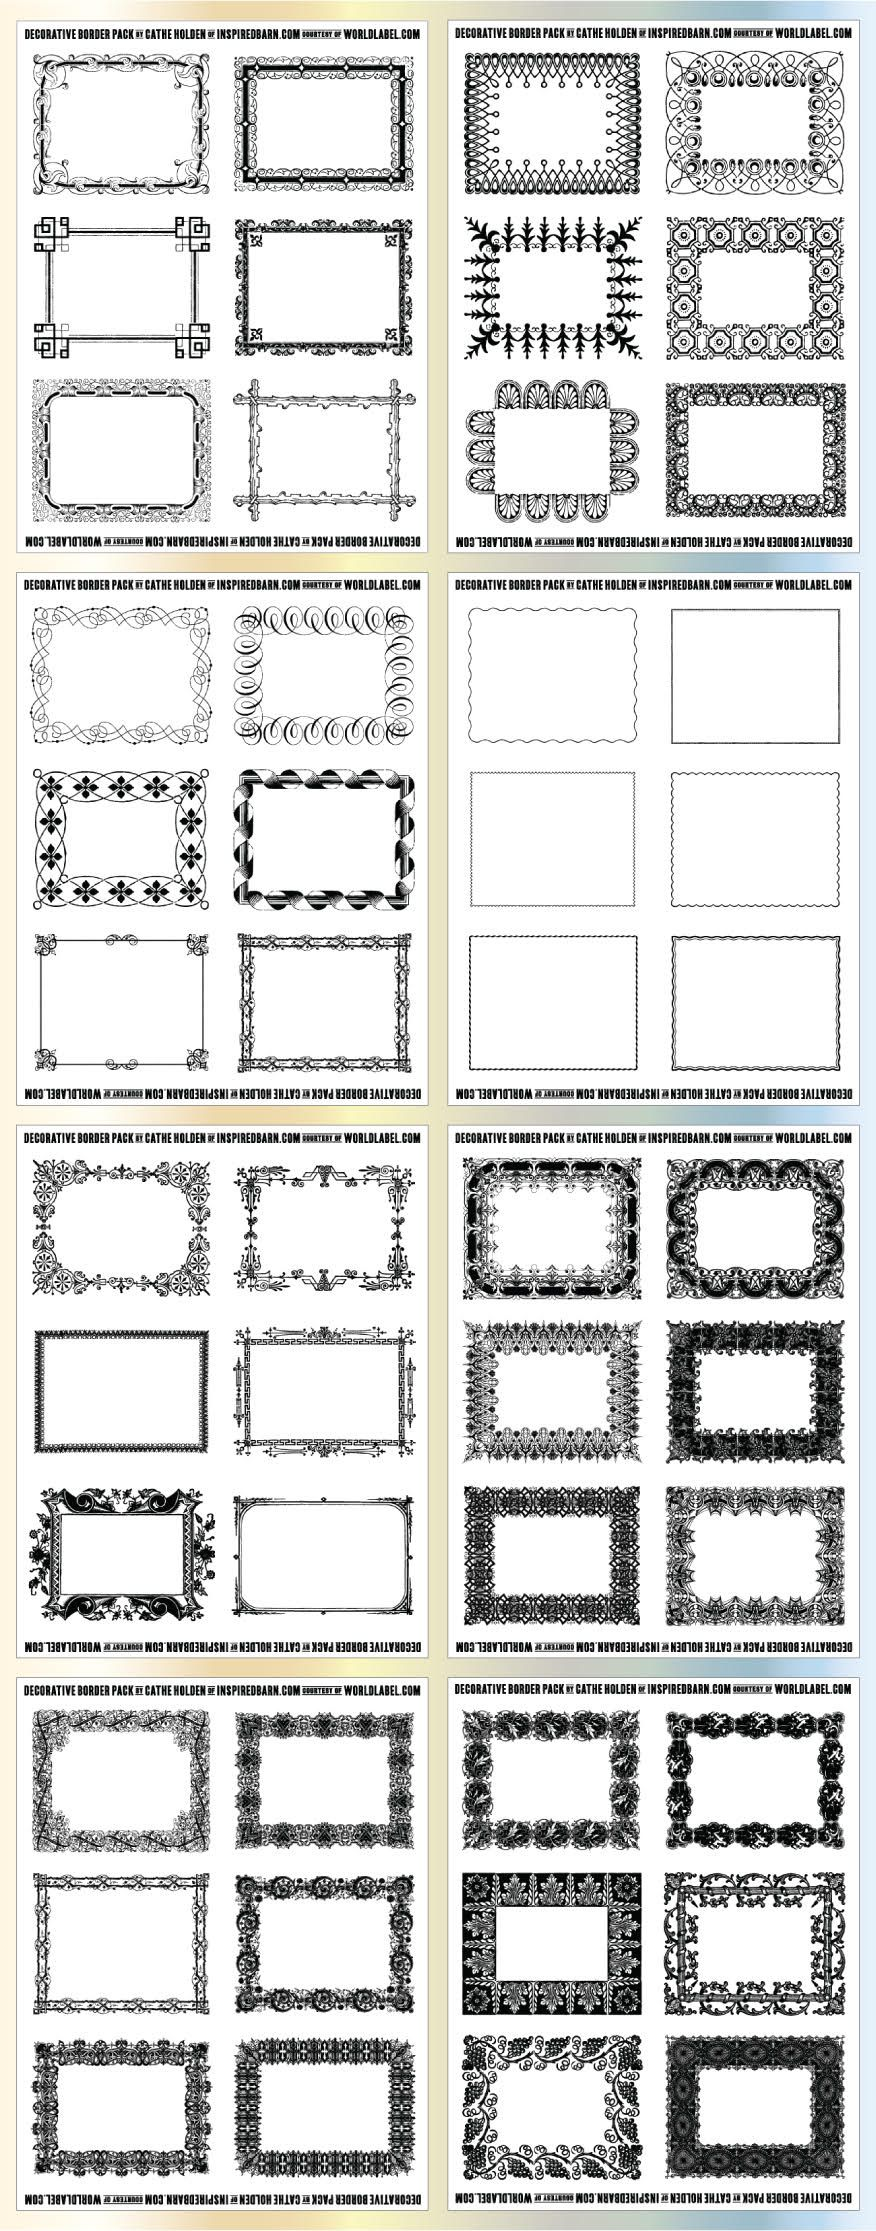 005 Incredible Free Label Maker Template For Mac Highest Clarity Full